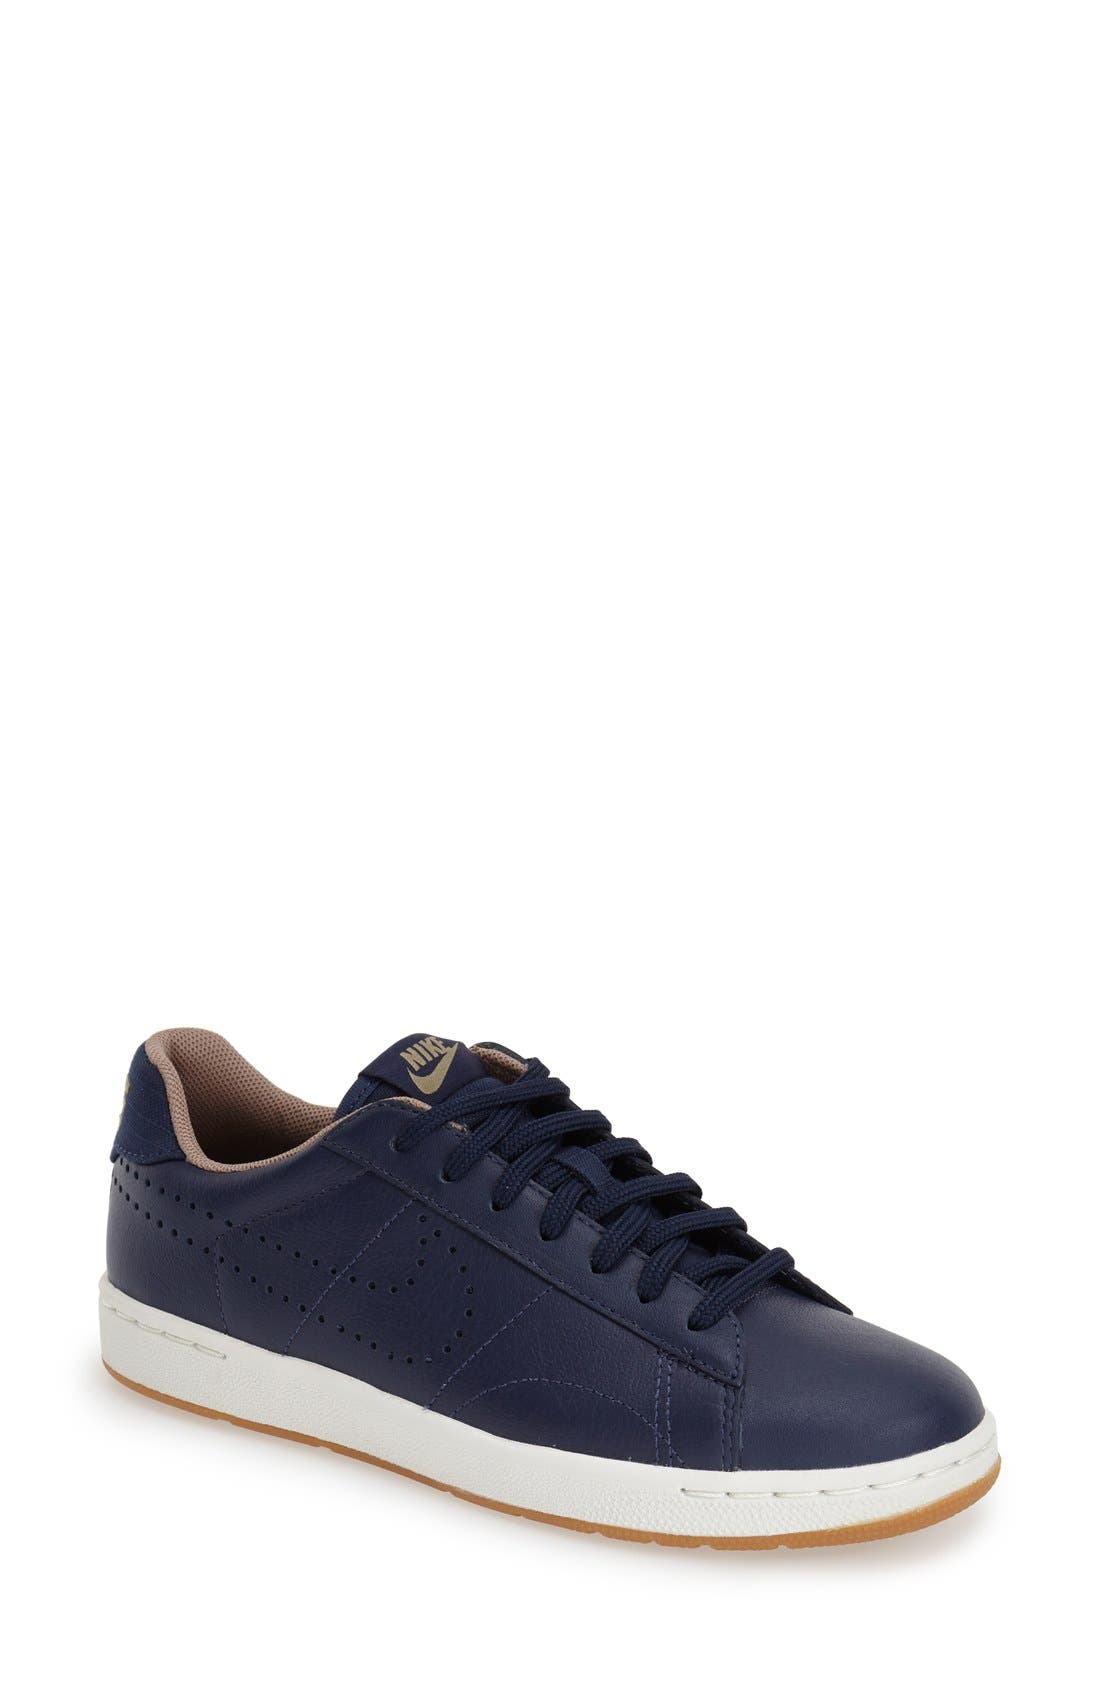 'Classic Ultra' Leather Sneaker,                             Main thumbnail 7, color,